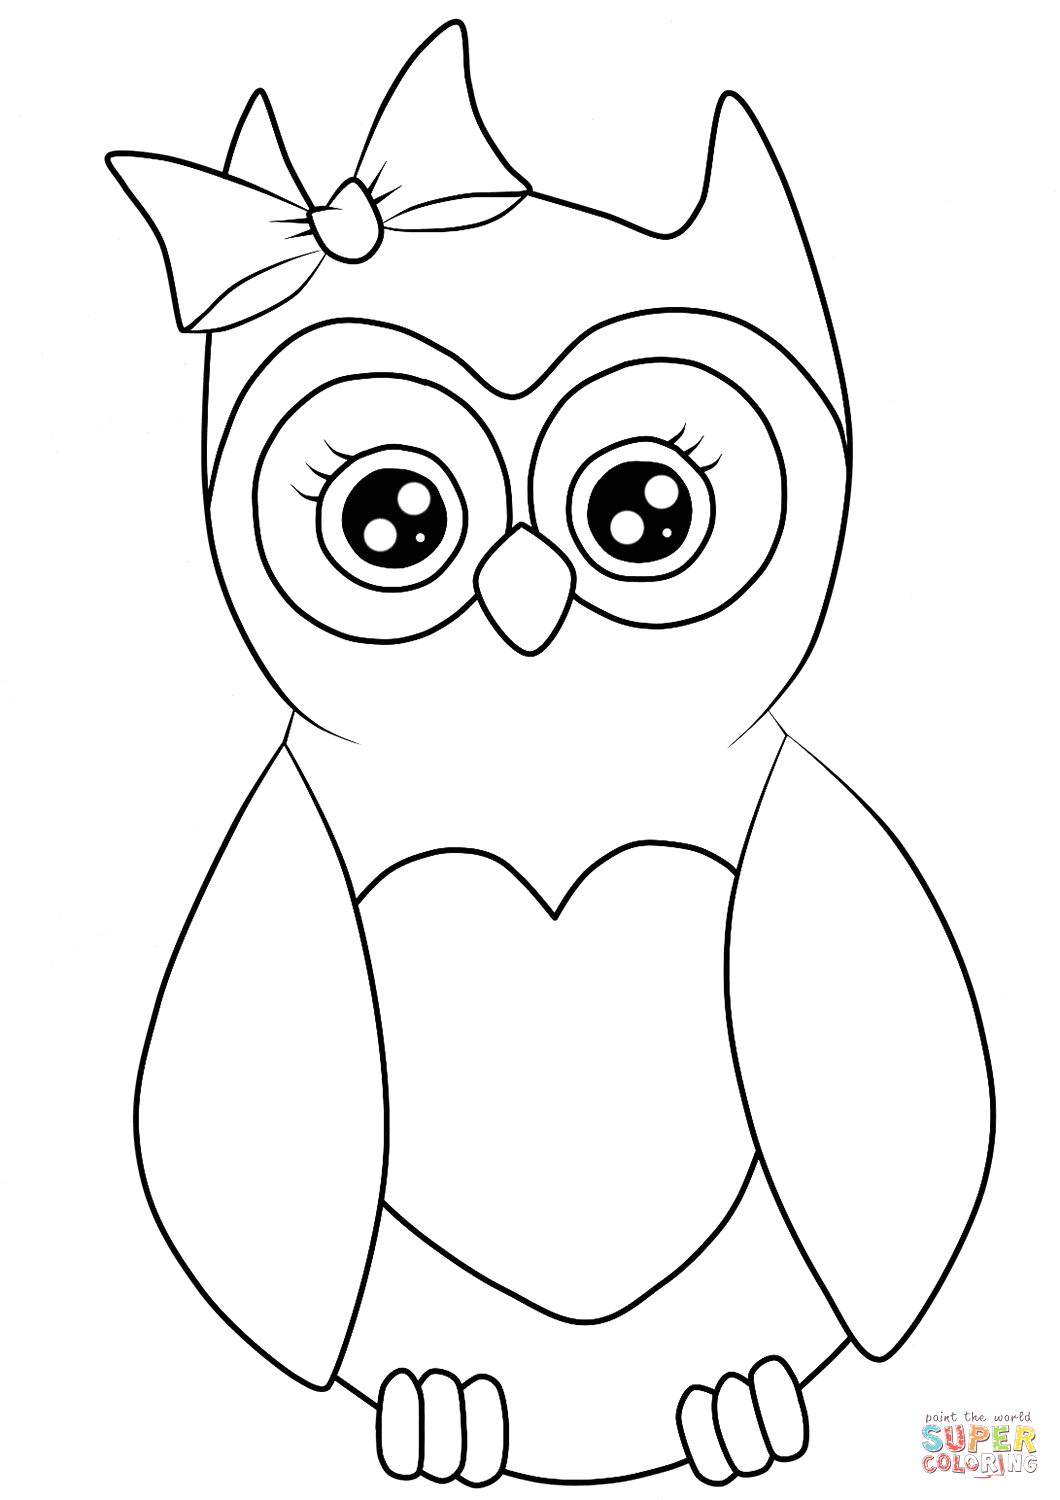 Free Cute Owl Coloring Pages to Print Cutest Cartoon Owl Coloring Page